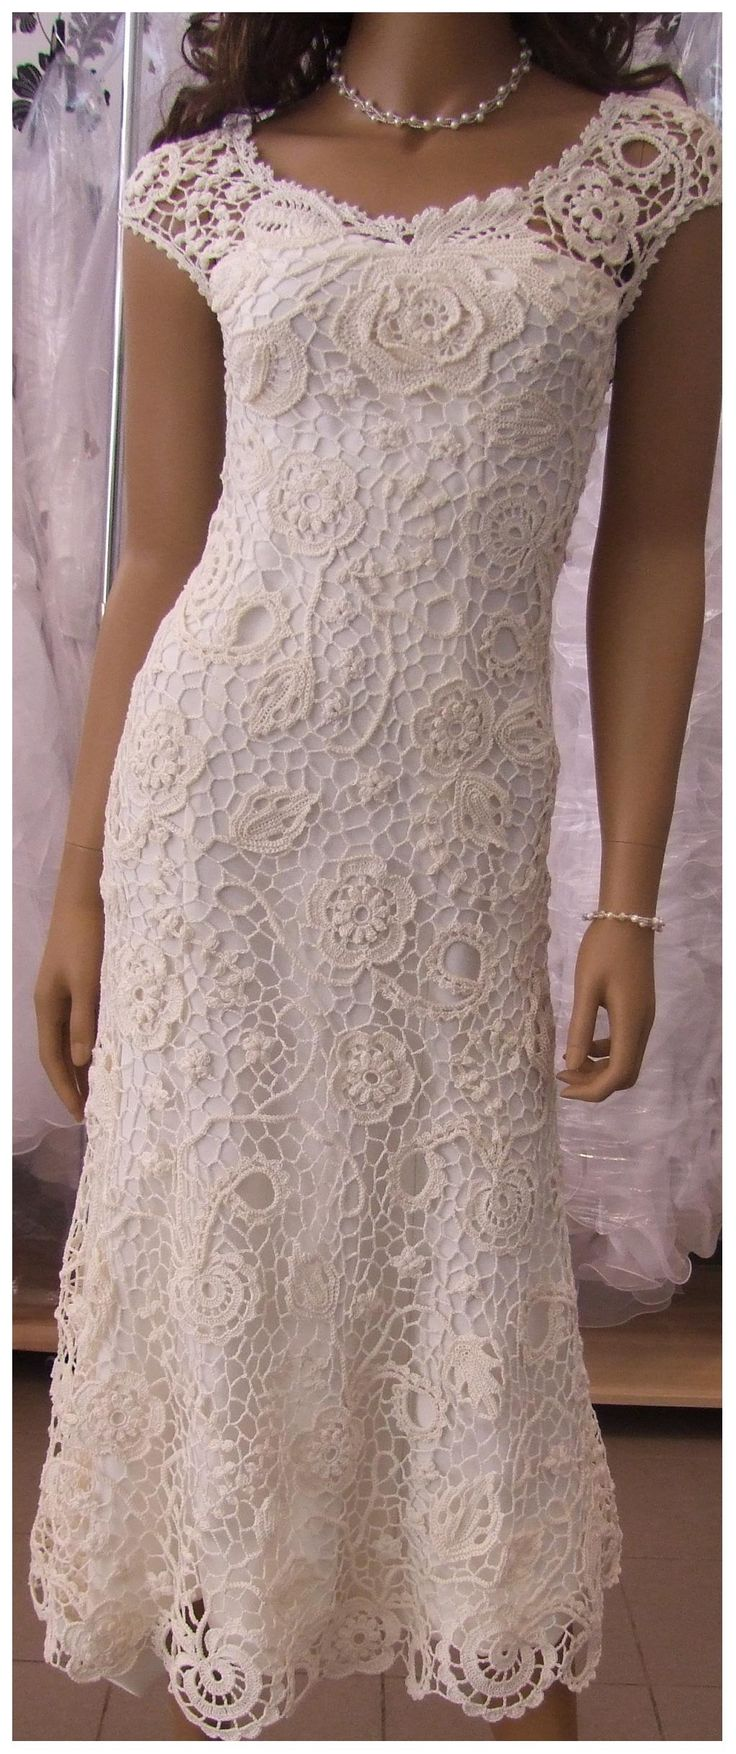 White dress crochet - Find This Pin And More On Diy Bolero Top Sweater Jacket Knitted Crocheted